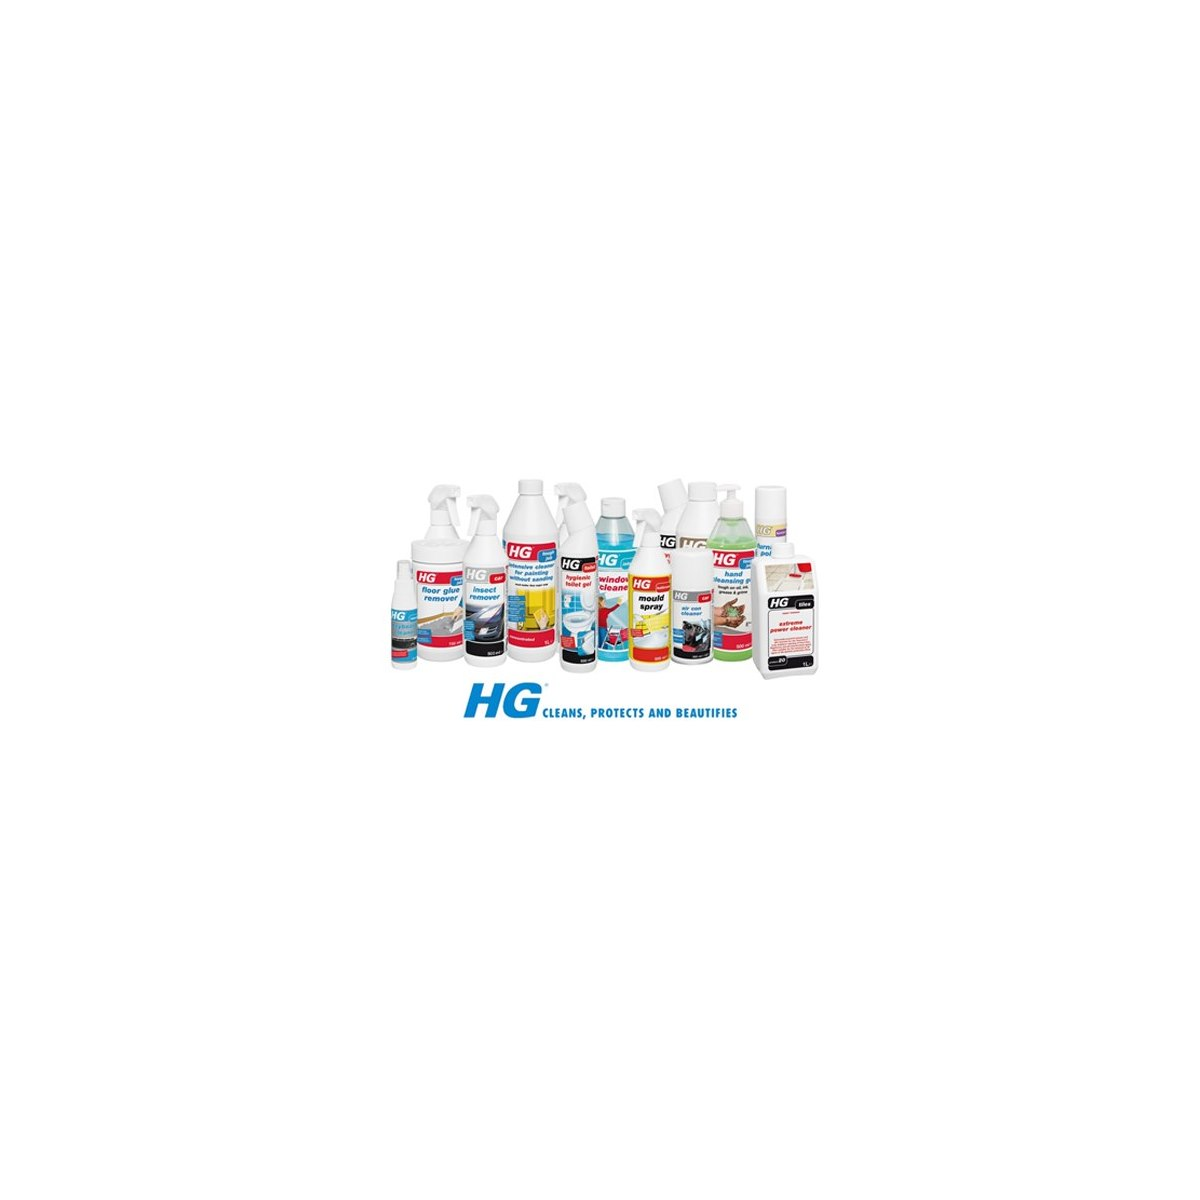 Where to buy HG Products